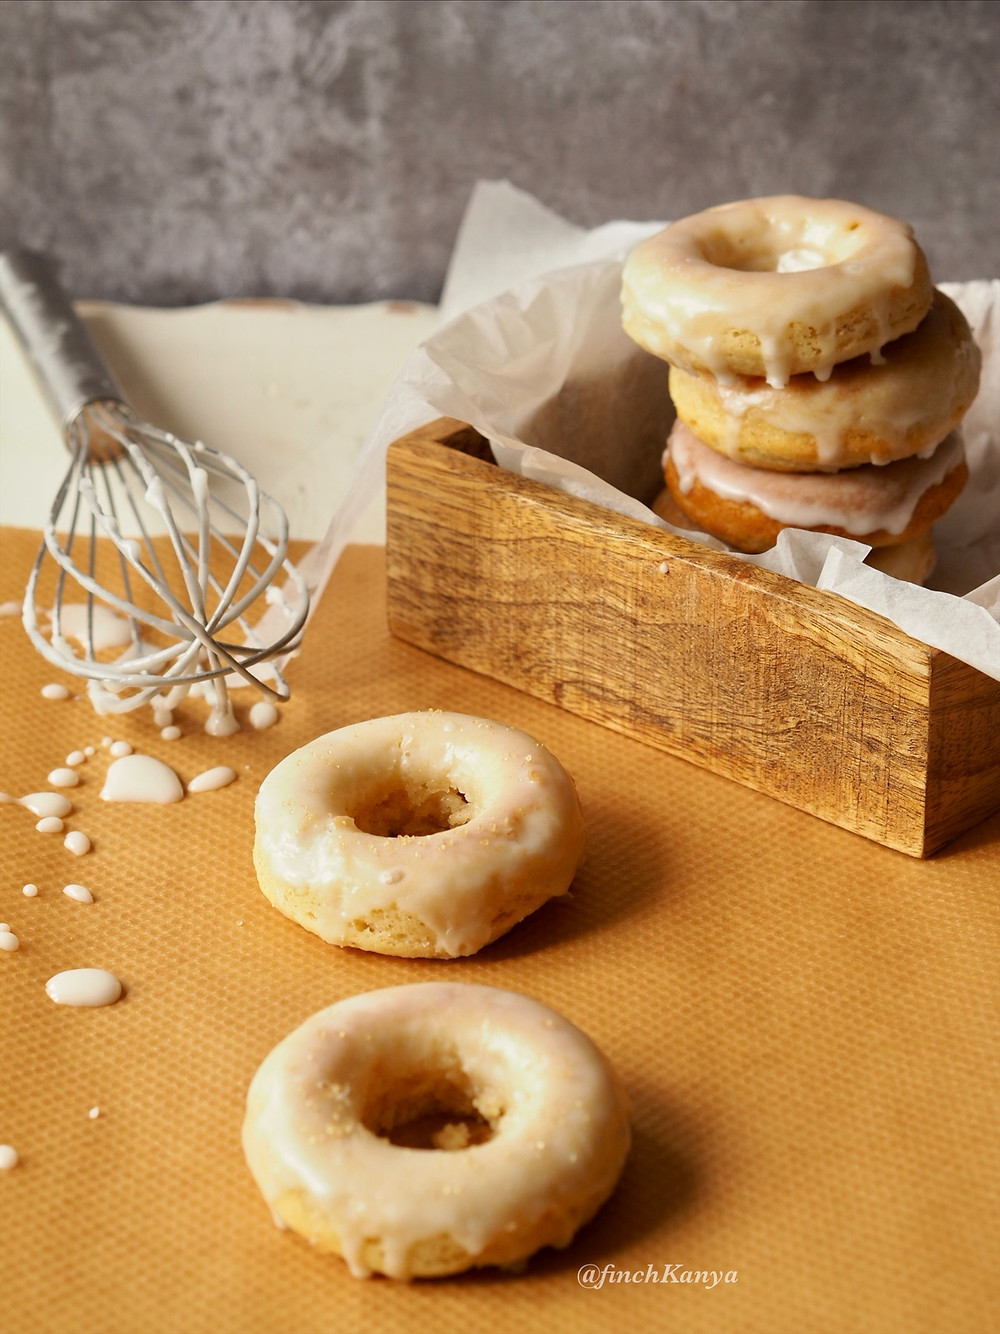 Soft and fluffy baked donuts glazed with icing sugar